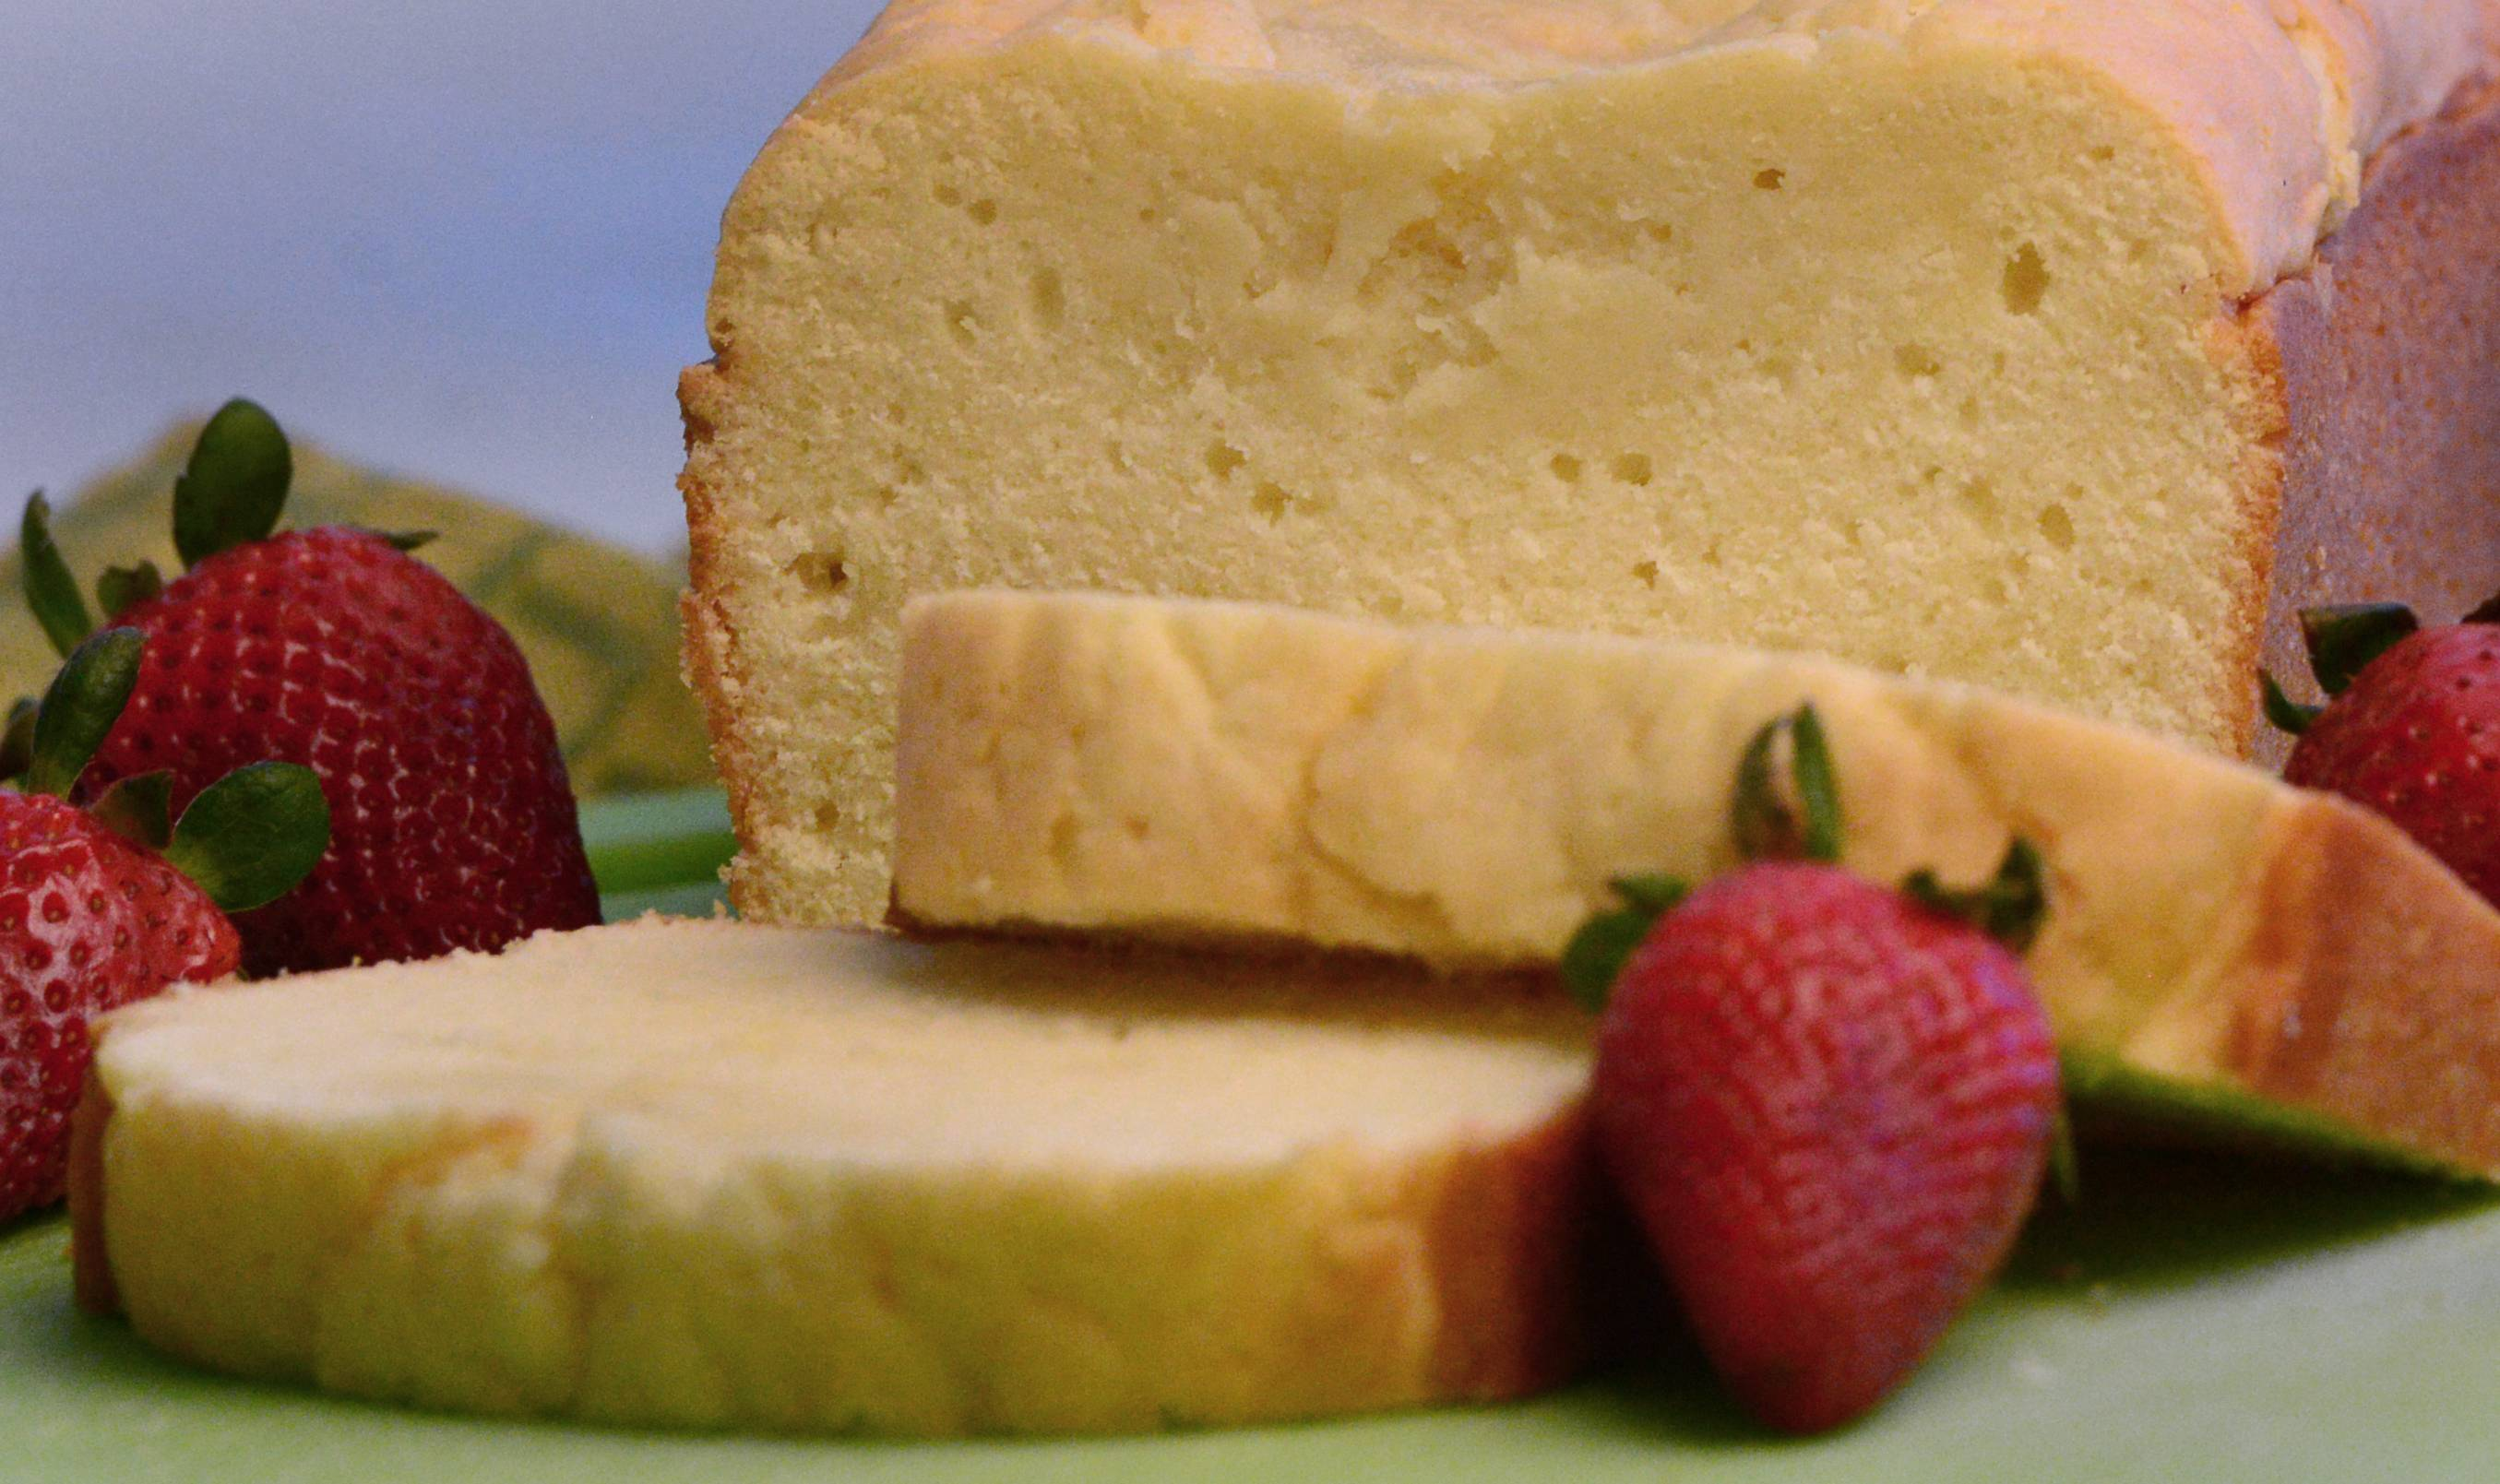 How a mixup turned a classic recipe into a poundcake to celebrate